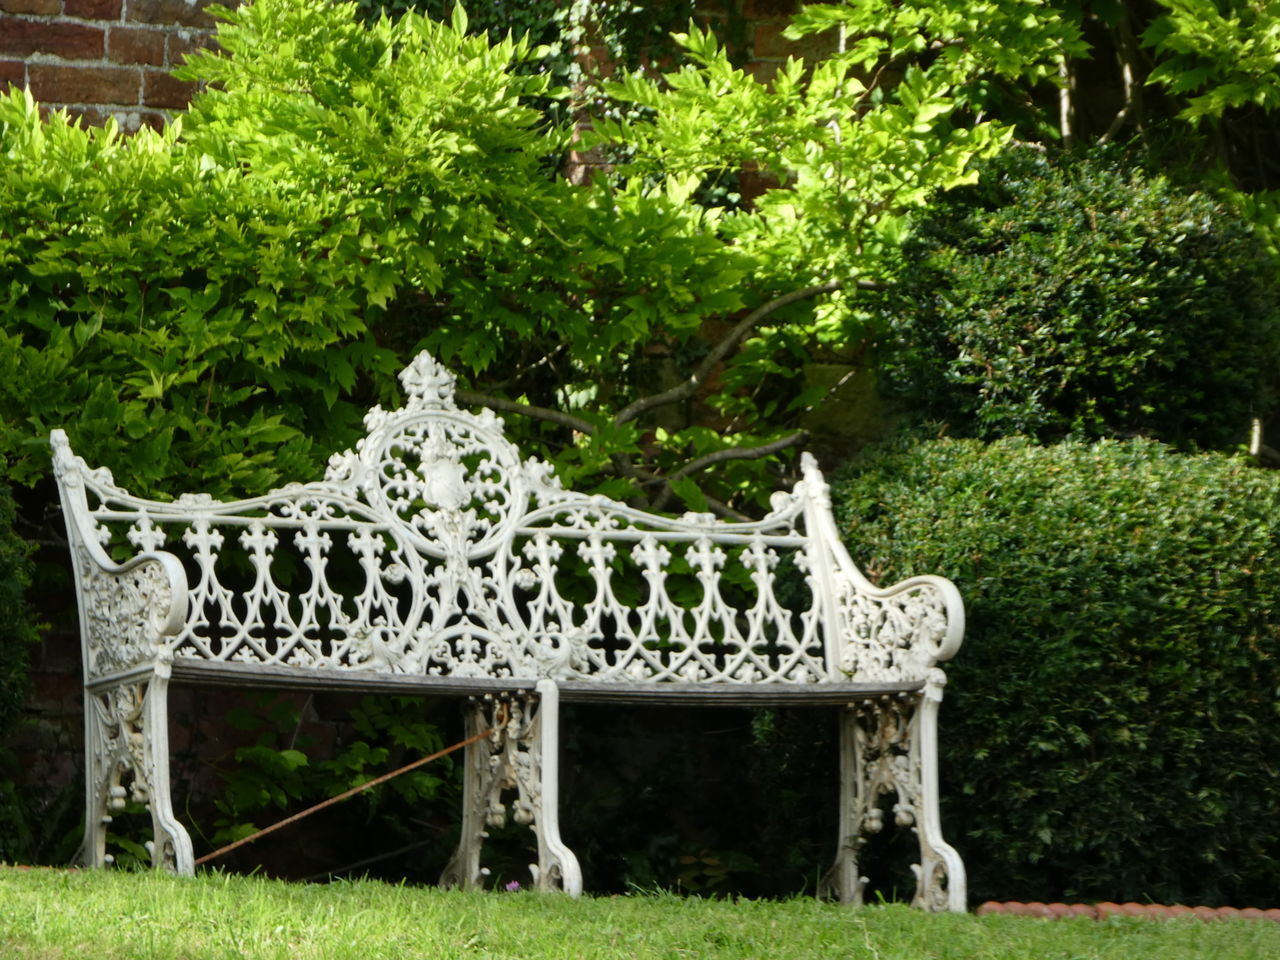 Beautiful, peaceful, solitude. Bench Seat Wrought Iron Design Iron White Lush Foliage Green Color Formal Garden Lawn Outdoors Park Tranquility Garden Grass Green Plant Sunlight Place To Relax❤ Nature Peaceful Tranquil Scene